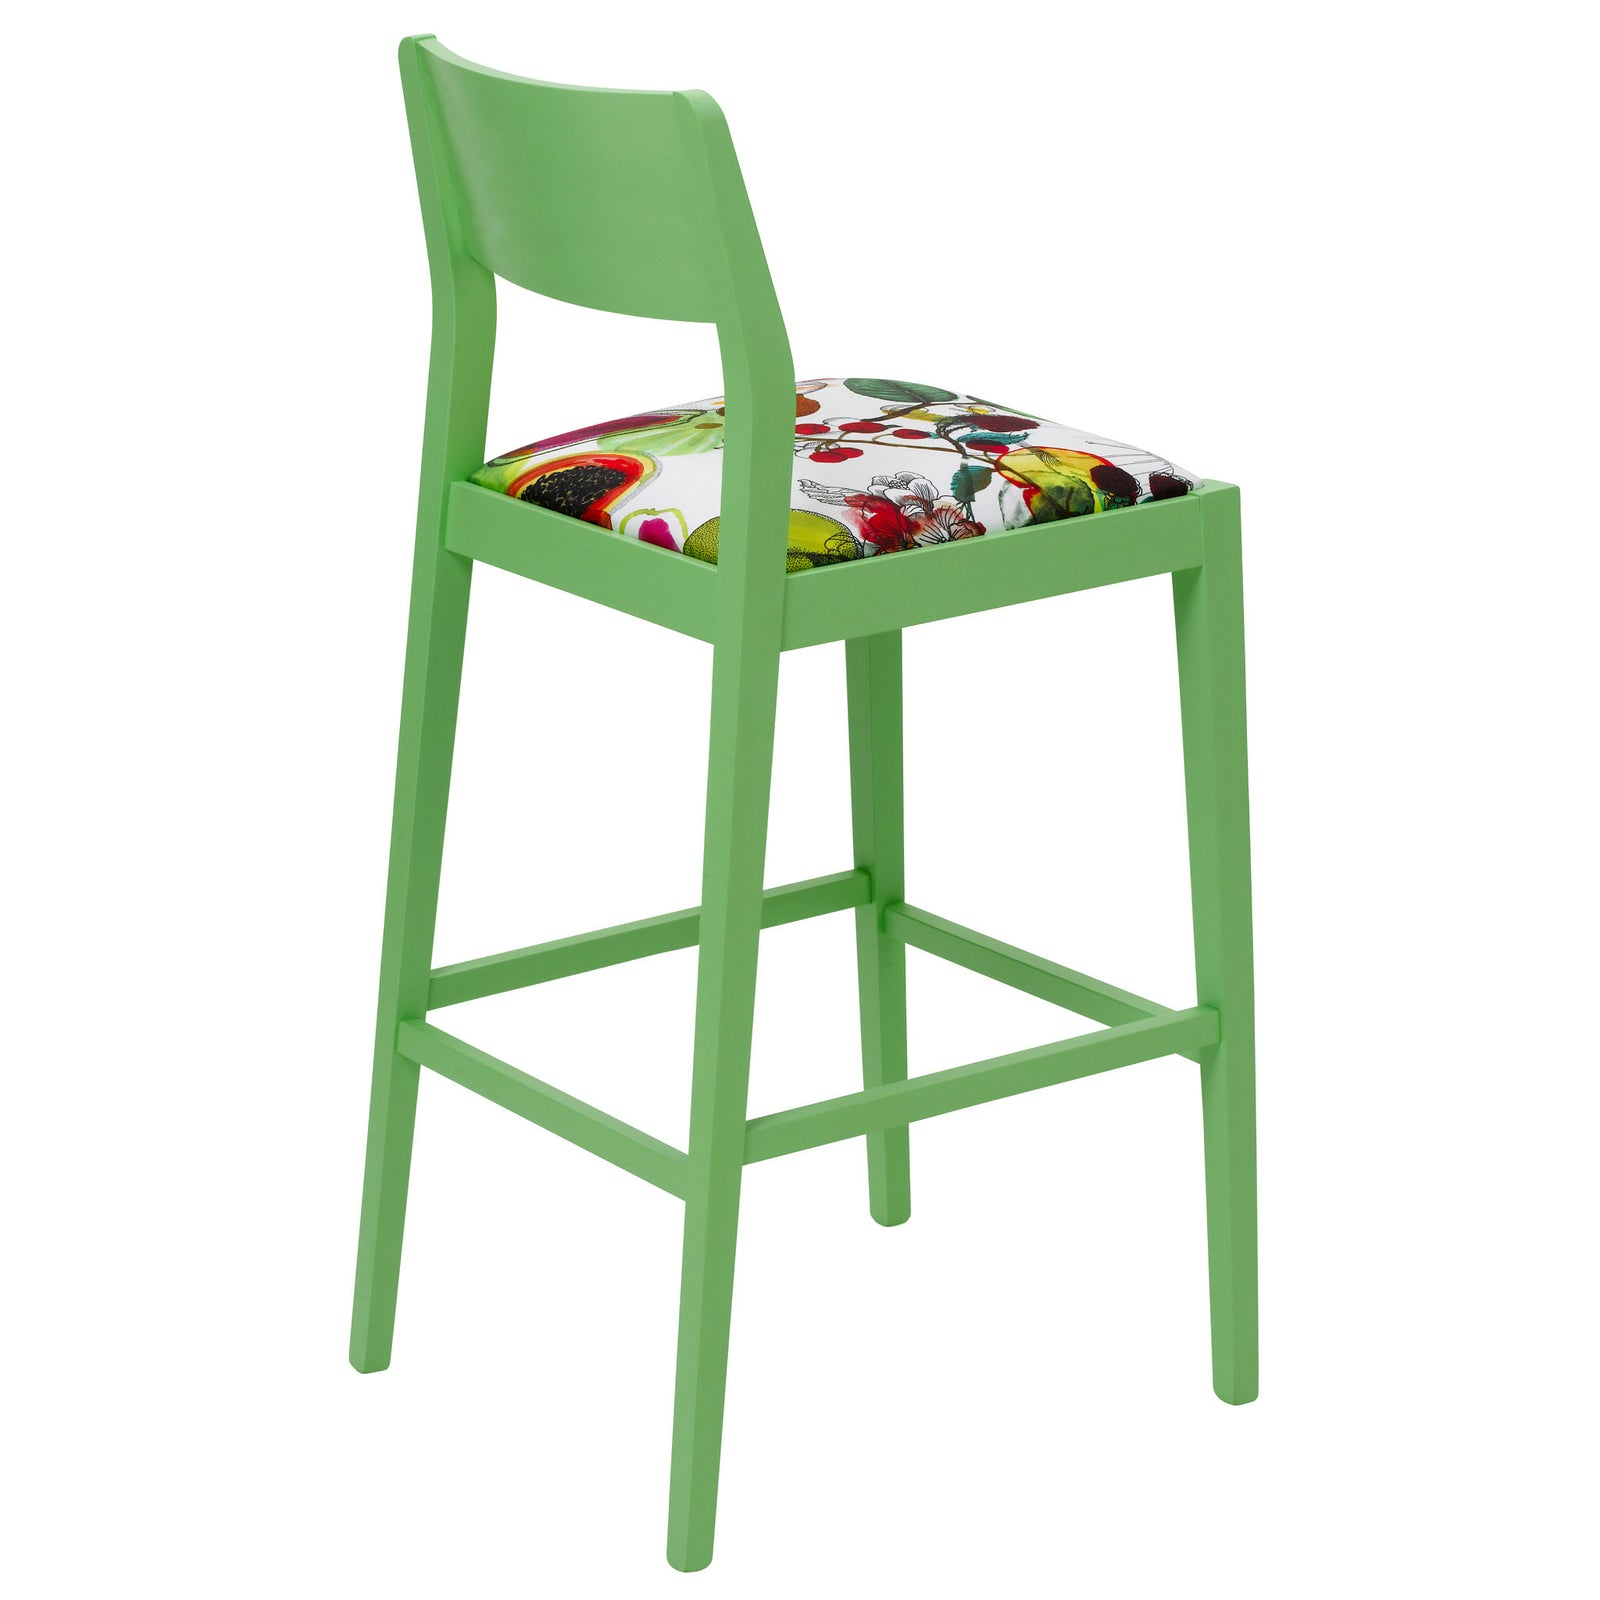 James Luxury Bar Stool in the exotic Manaos Perroquet from the House of Lacroix